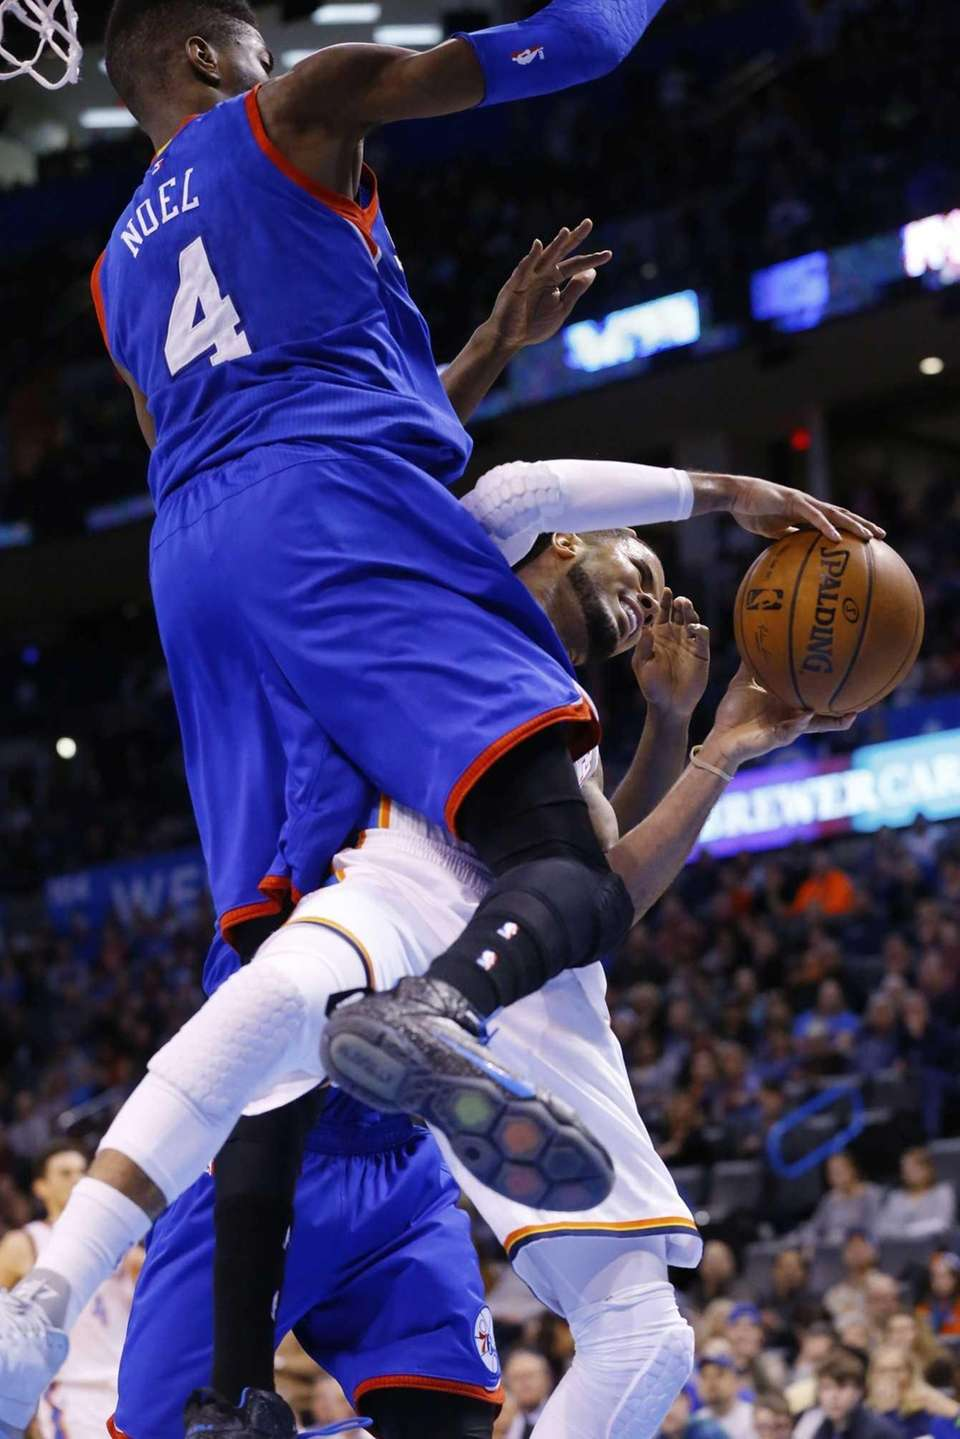 Oklahoma City Thunder guard D.J. Augustin, right, becomes